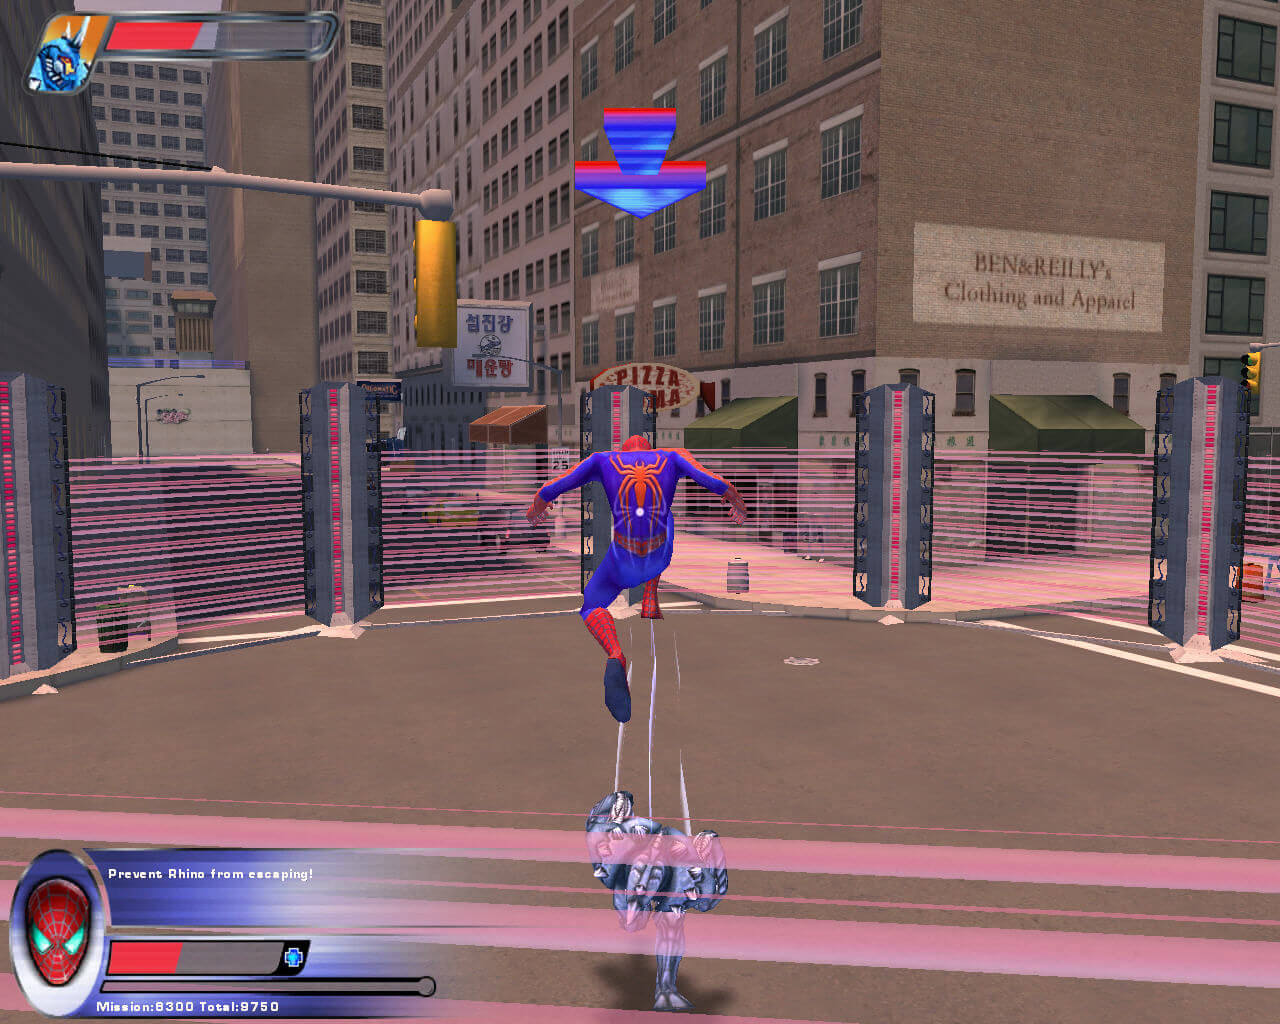 Spiderman 2 the movie game pc download cheap trick windsor casino